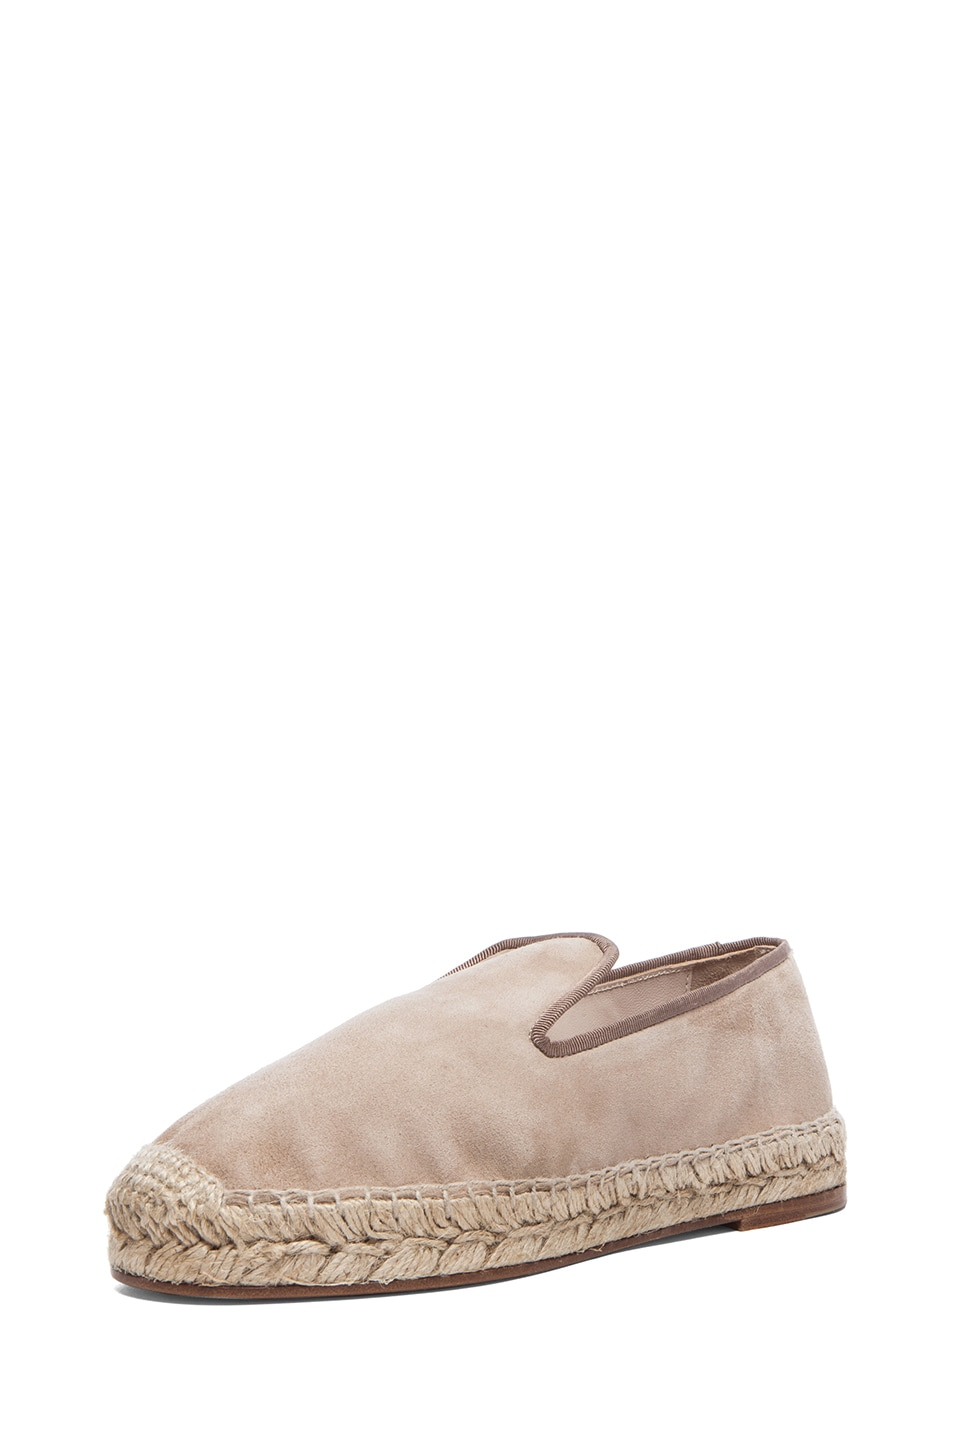 Image 2 of elysewalker los angeles Suede Espadrilles in Dune